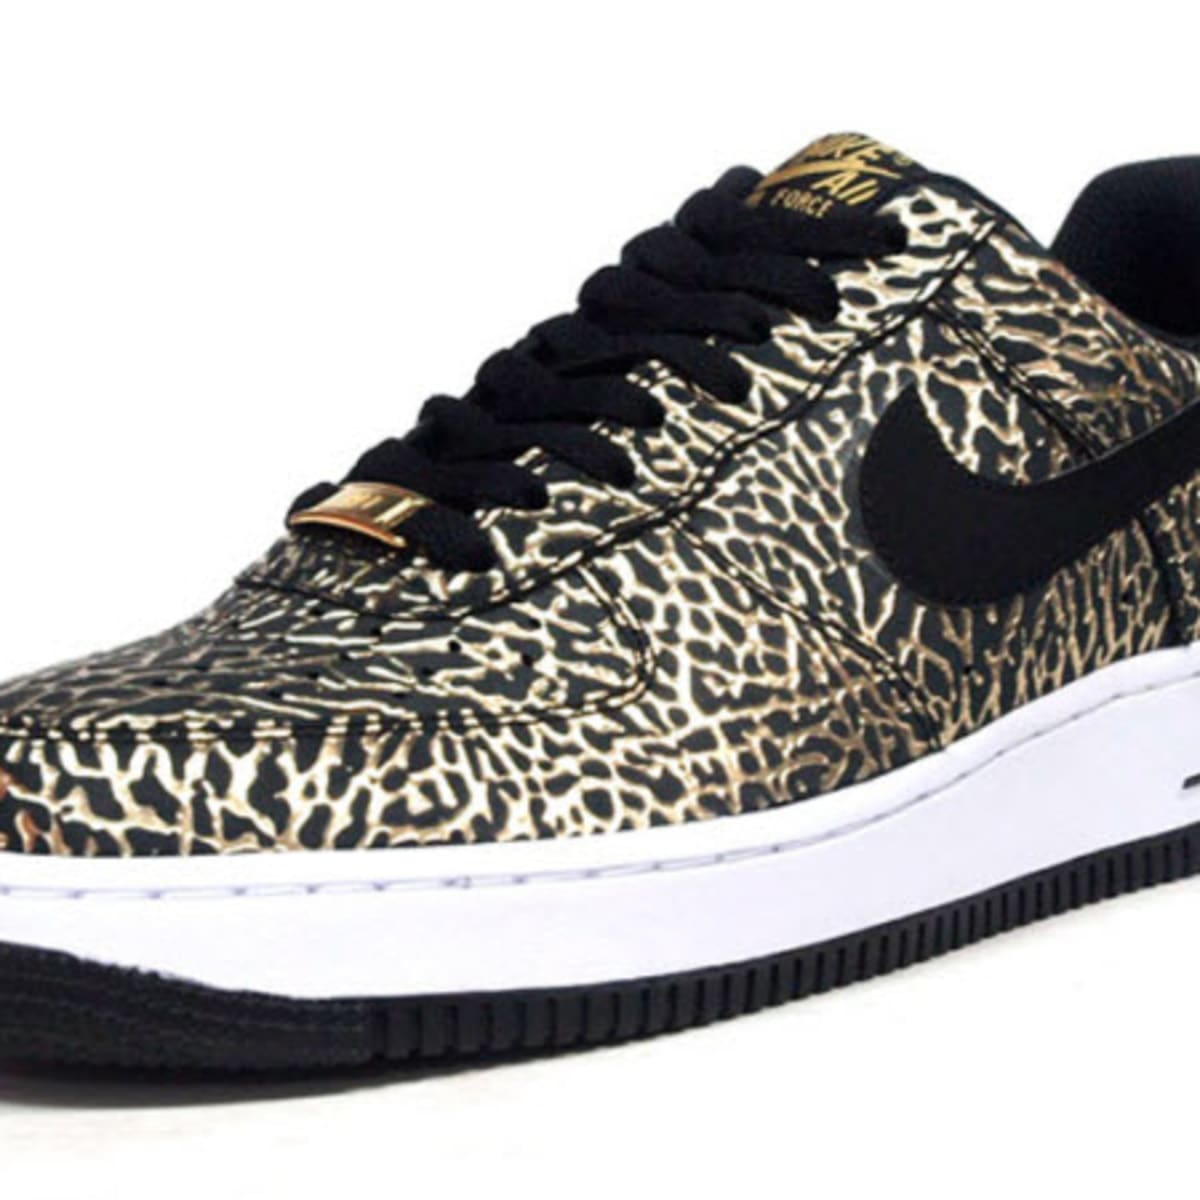 Nike Air Force 1 Low - Gold Elephant